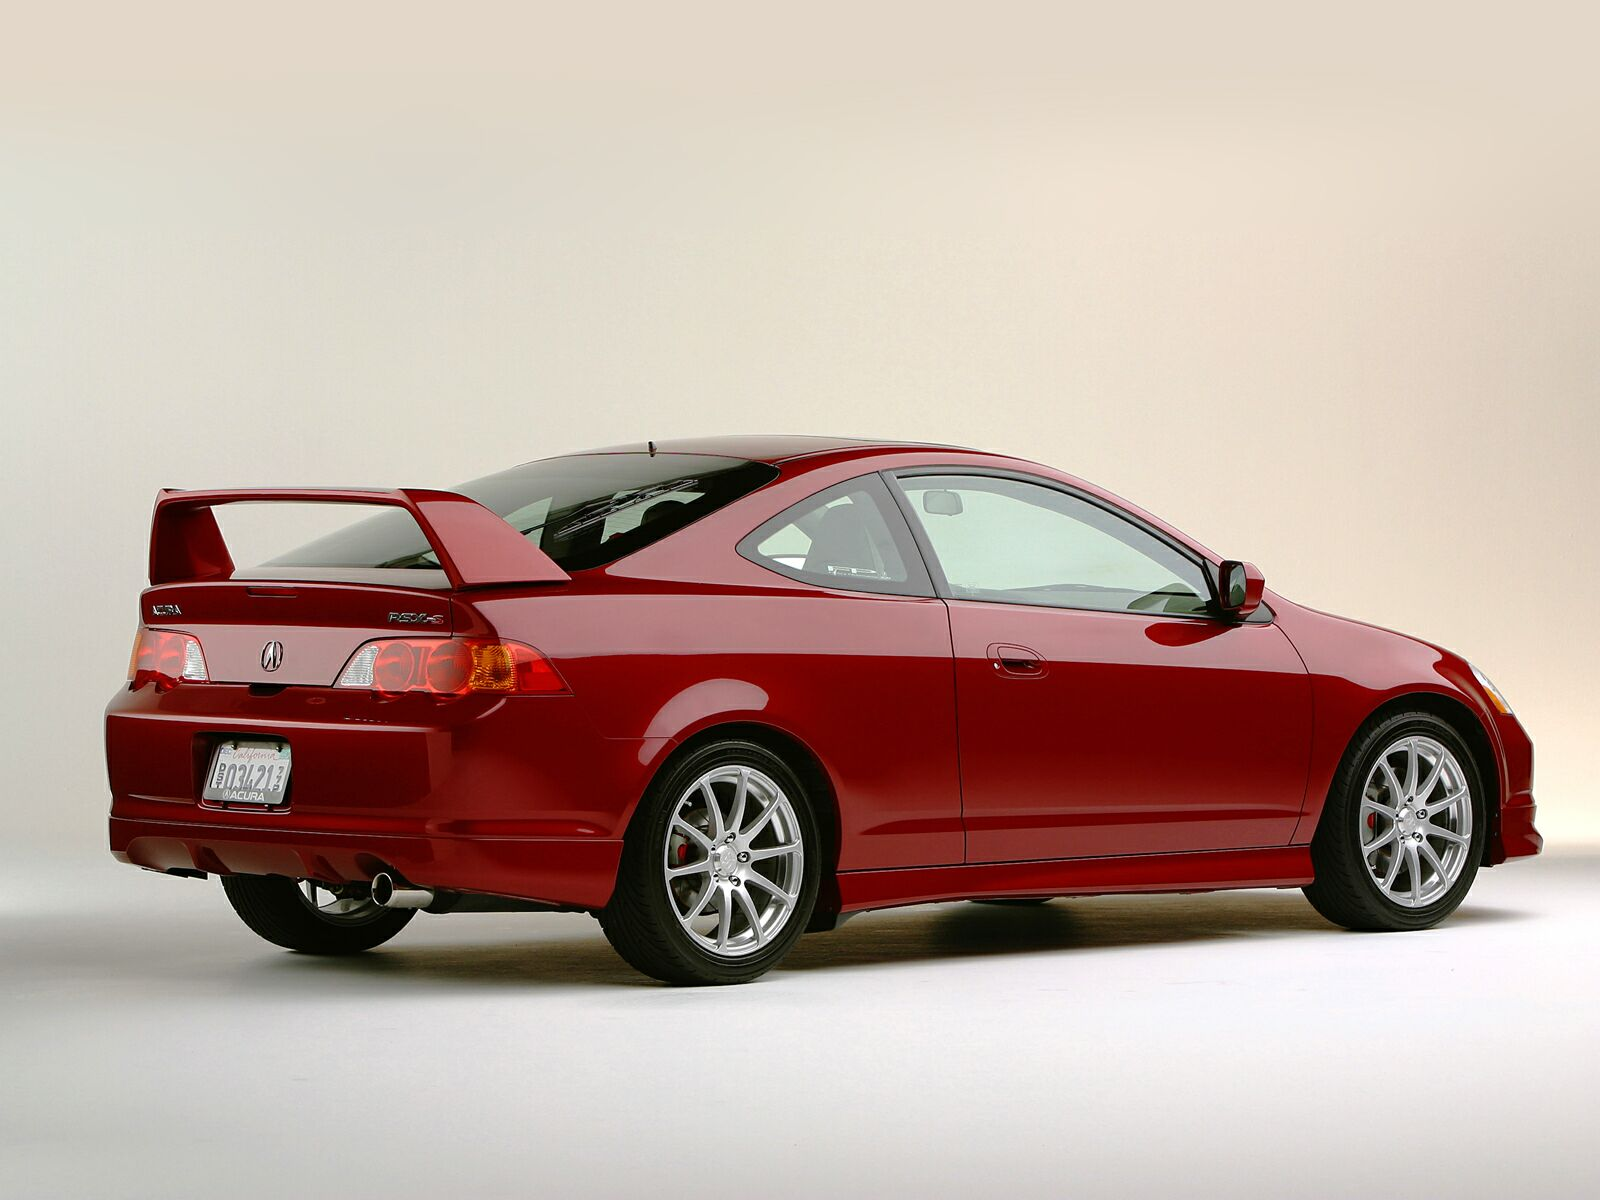 Acura RSX photo 9010